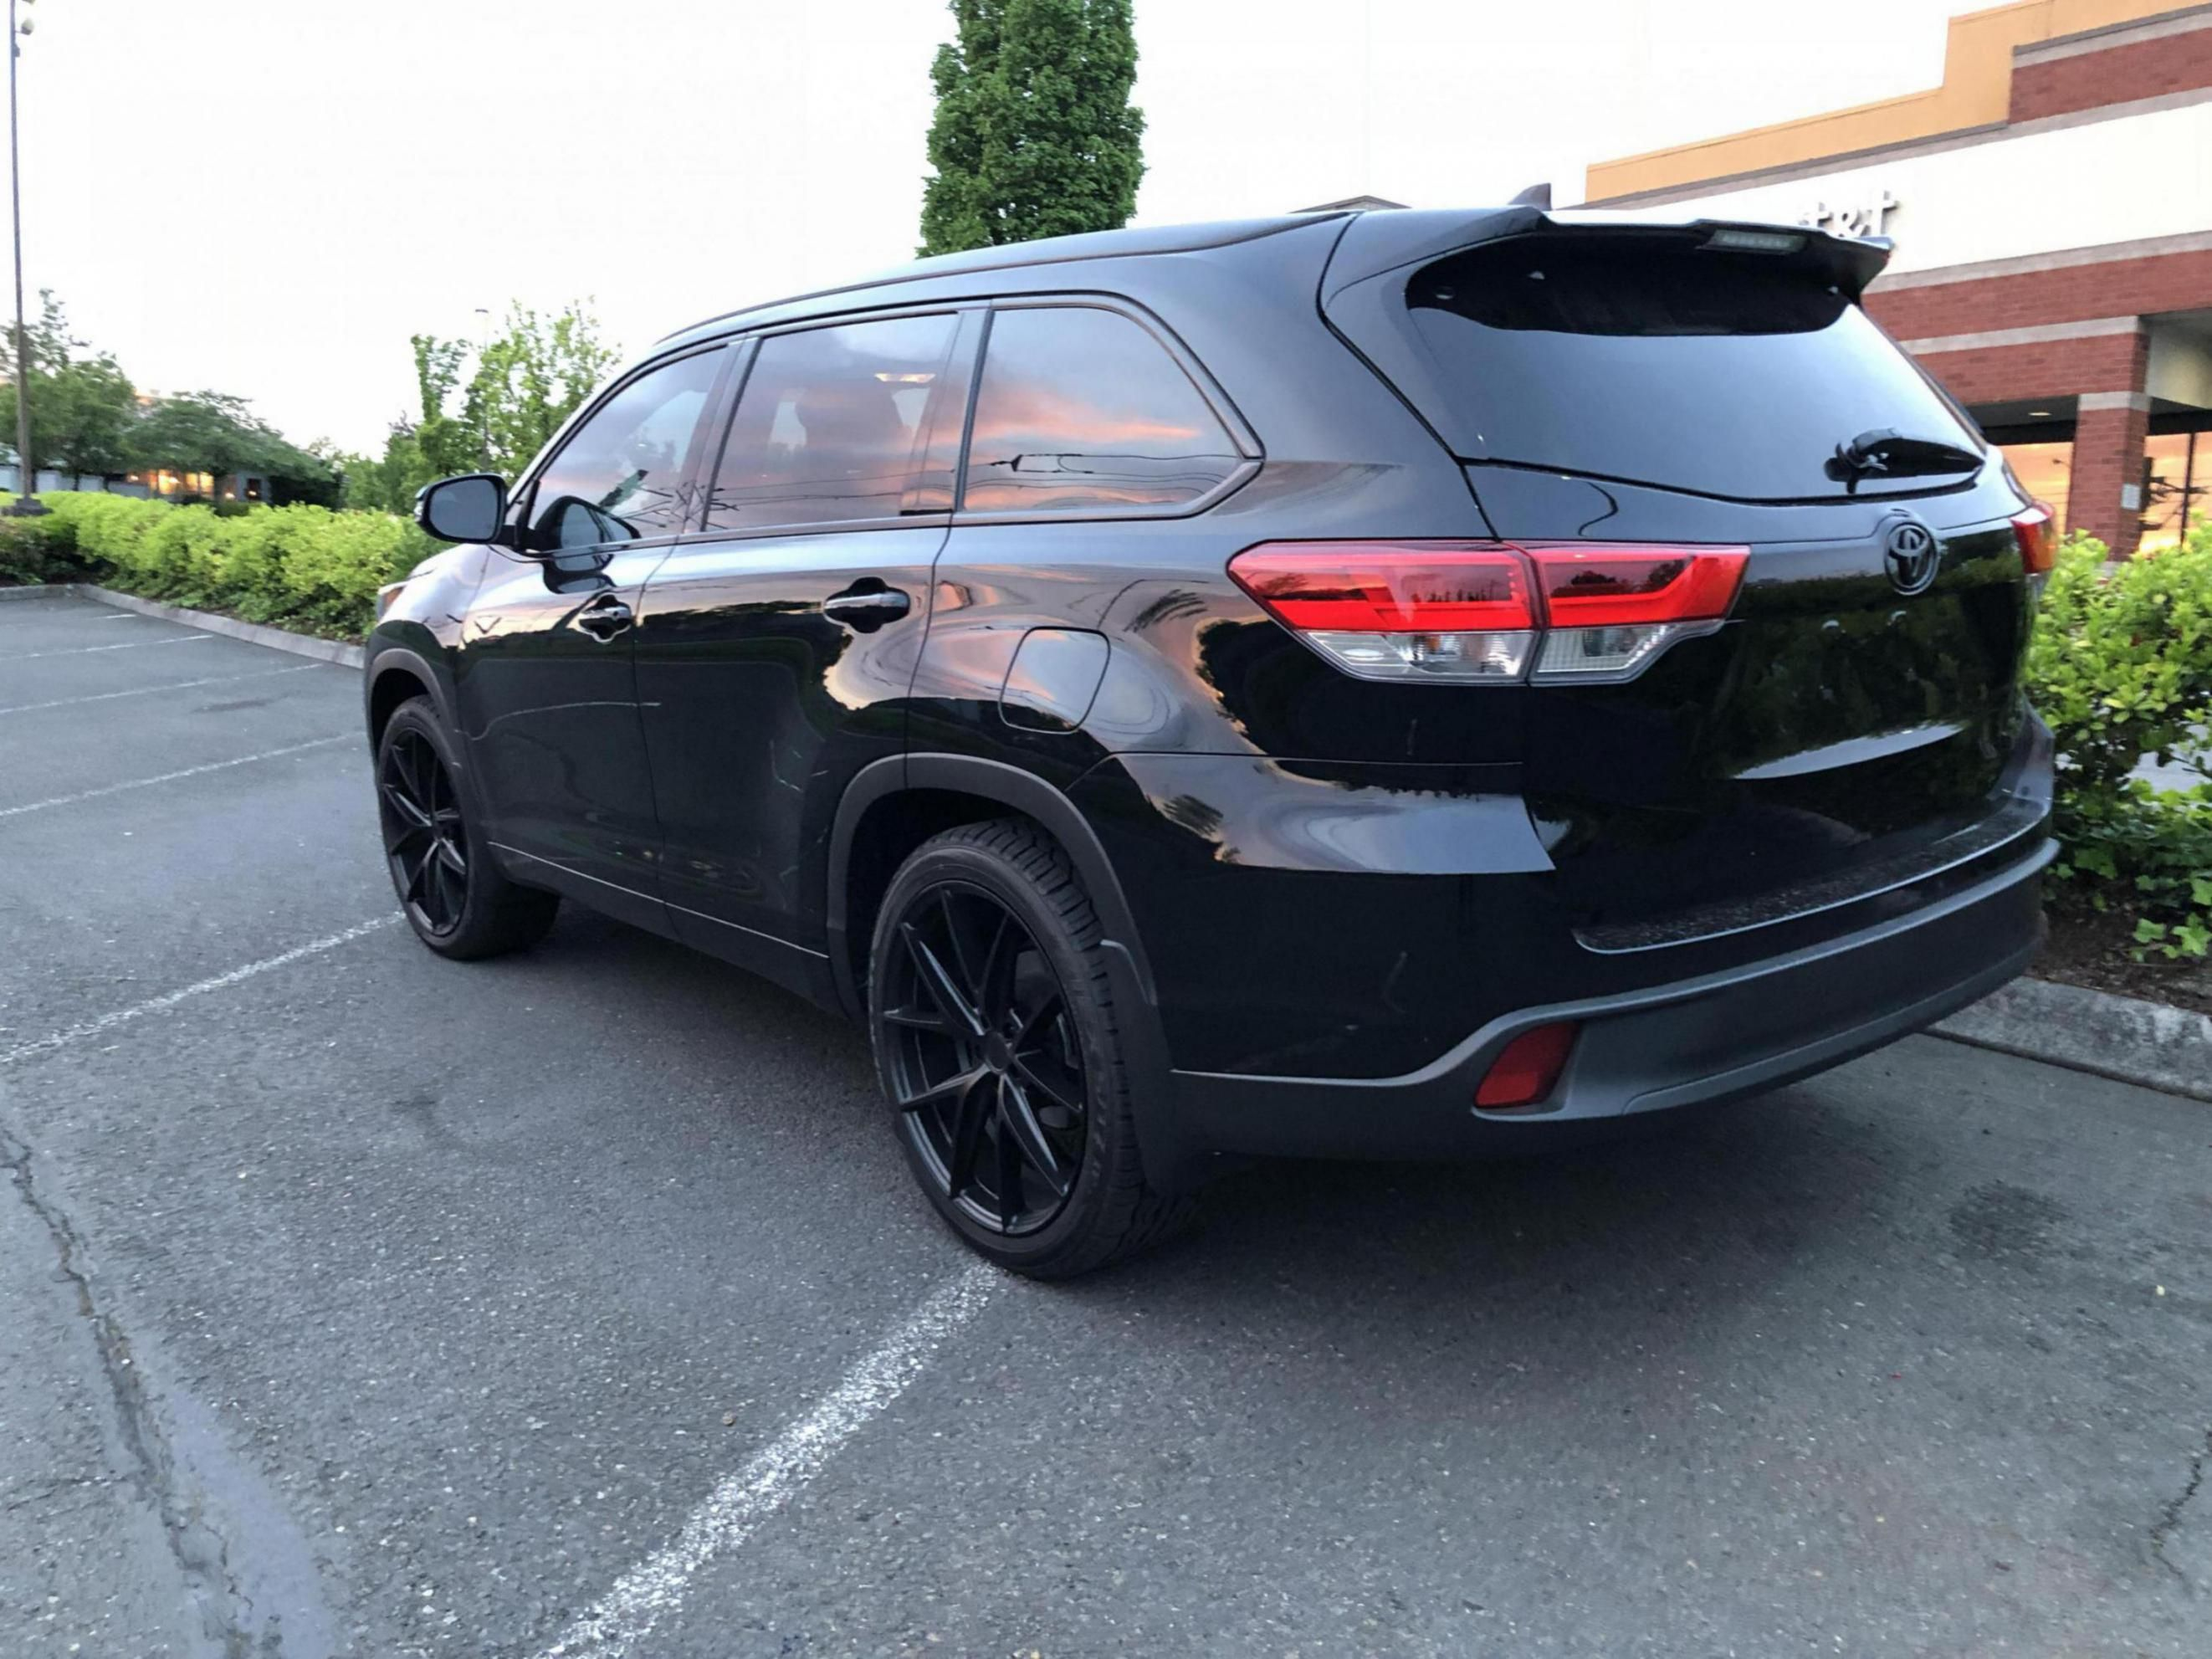 Https Www Toyotanation Com Threads Please Post A Picture Of Your Aftermarket Wheels 1480818 Page 7 In 2020 Aftermarket Wheels Toyota Toyota Highlander